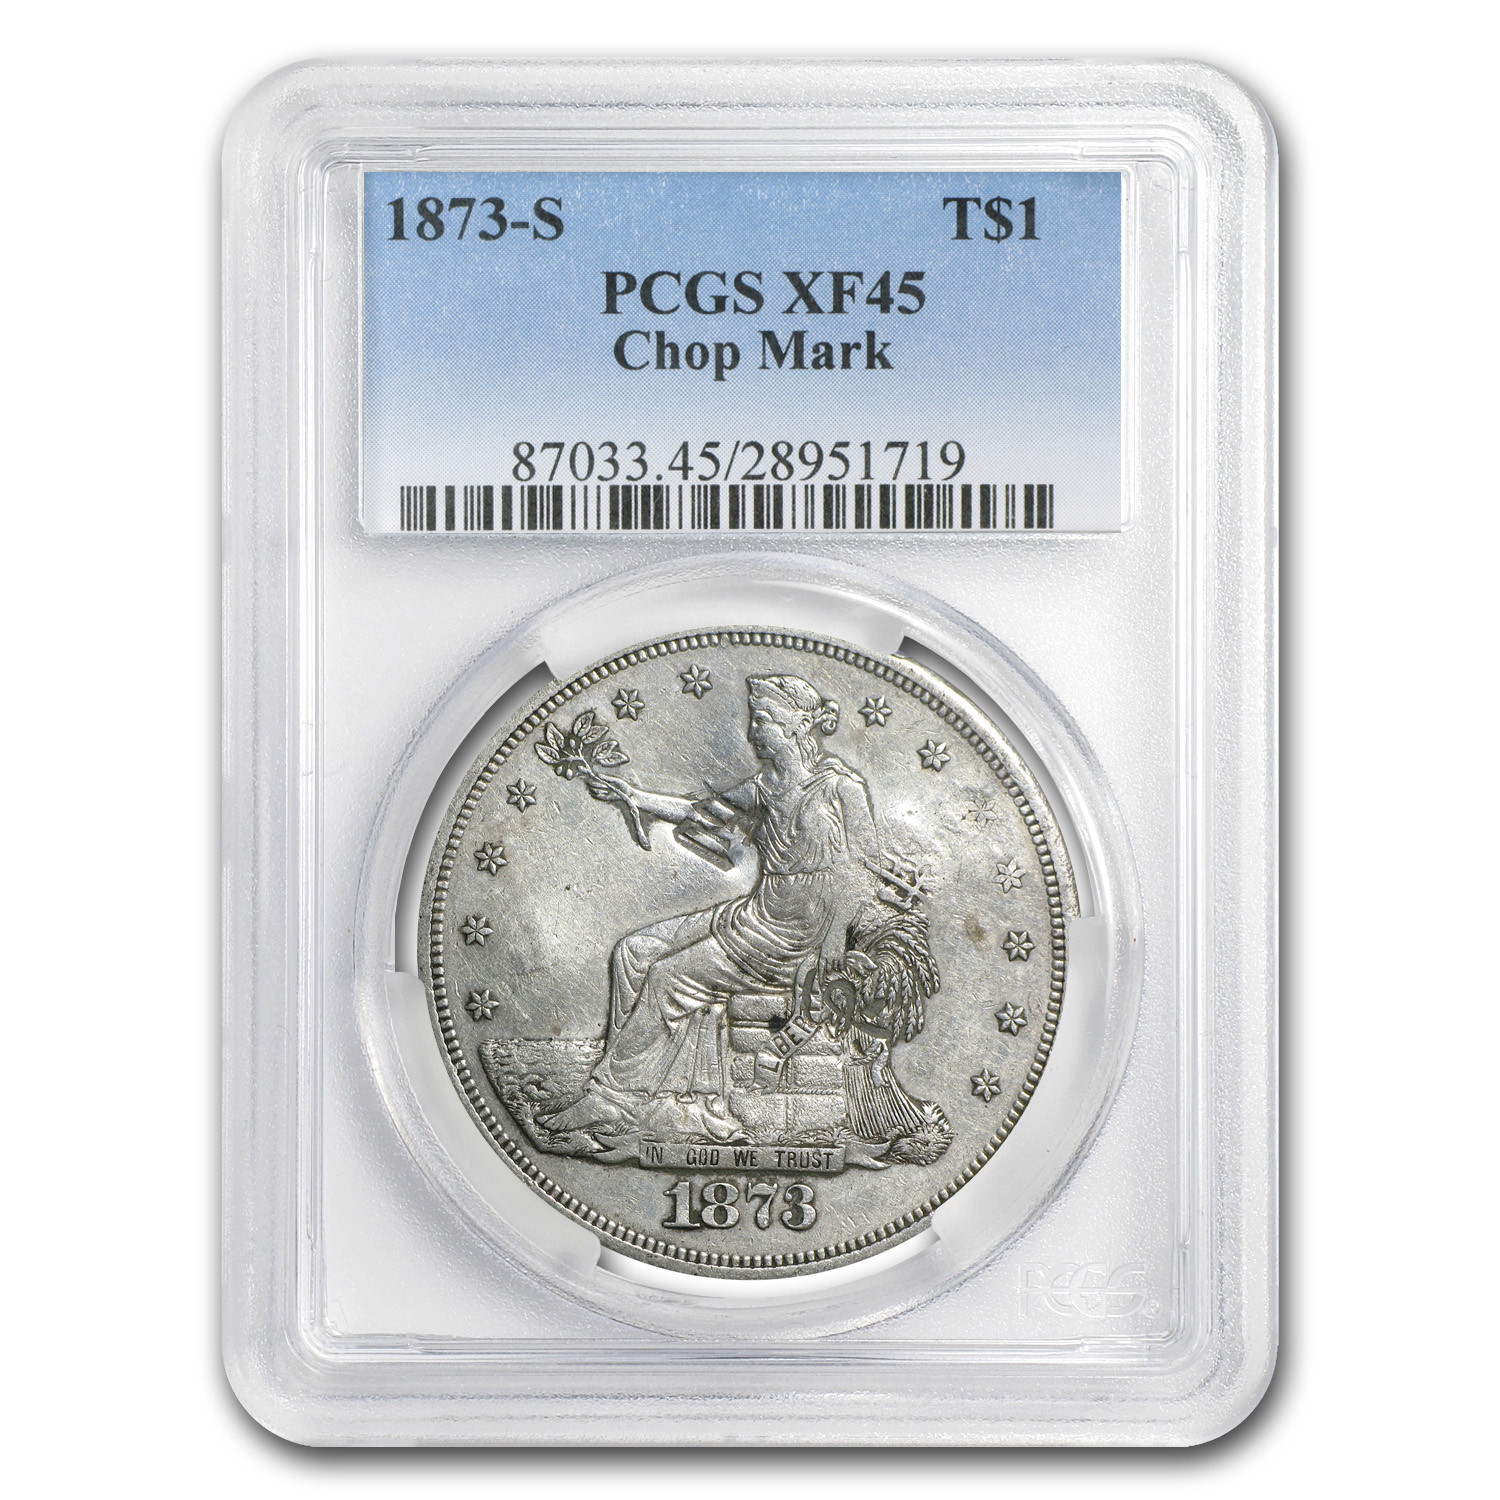 1873-S Trade Dollar XF-45 PCGS (Chopmark)